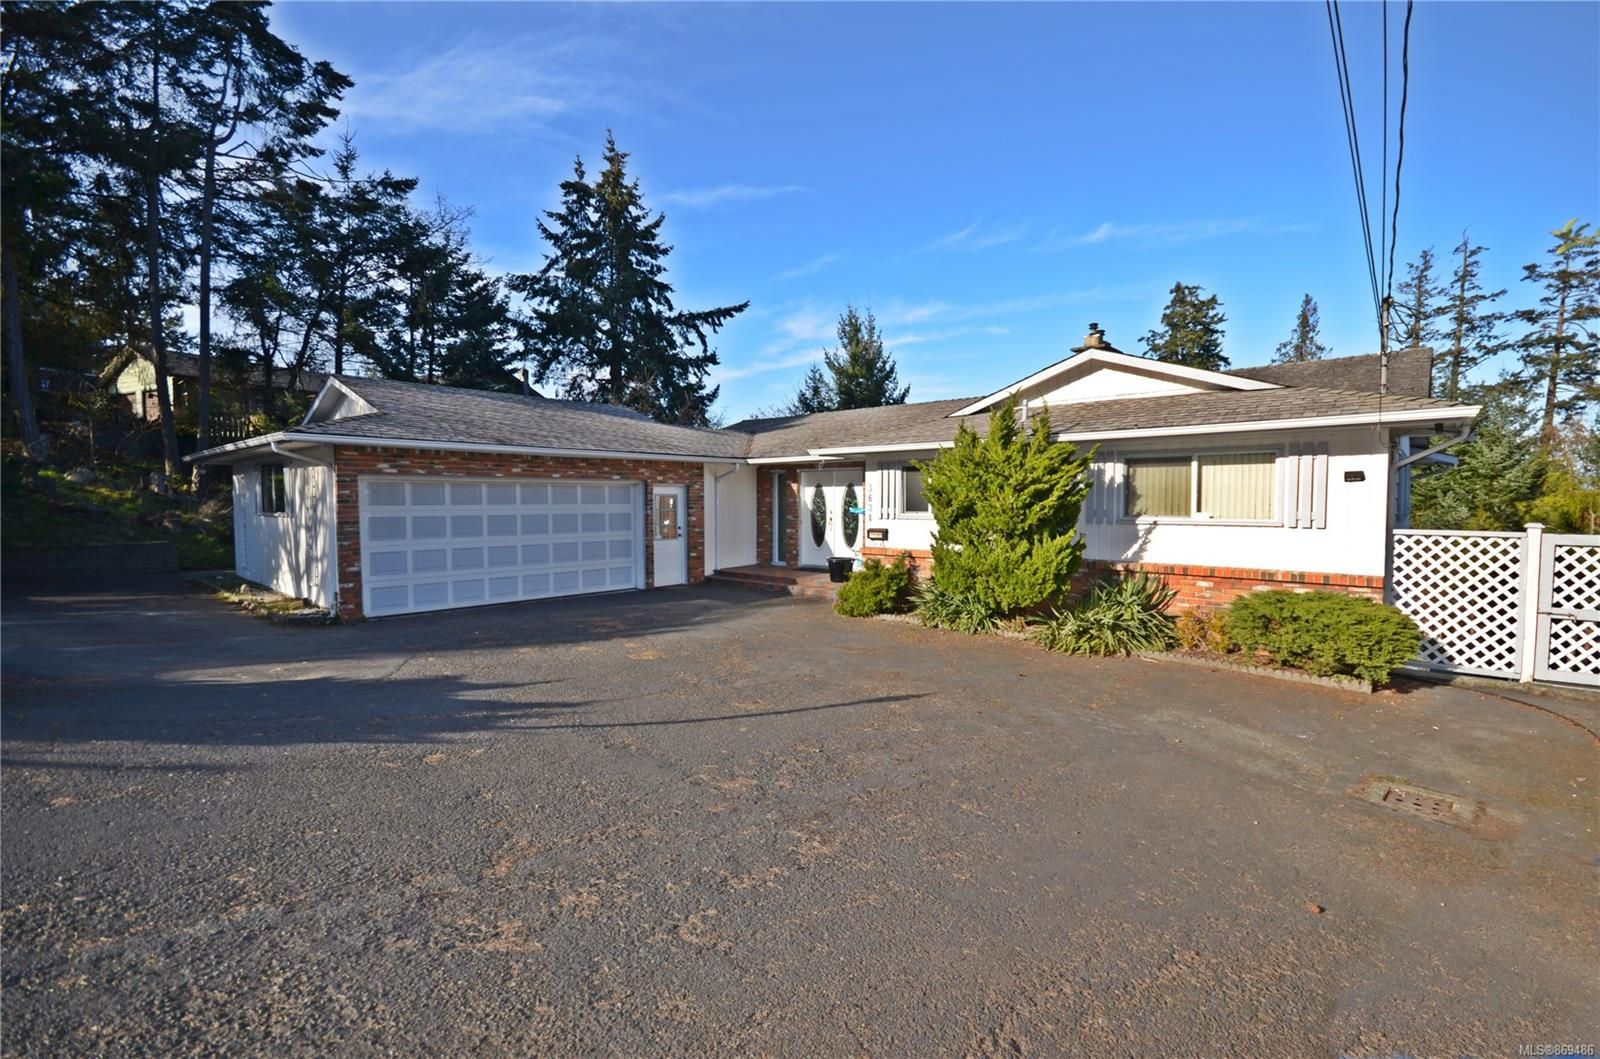 Main Photo: 3634 Planta Rd in : Na Hammond Bay House for sale (Nanaimo)  : MLS®# 869486